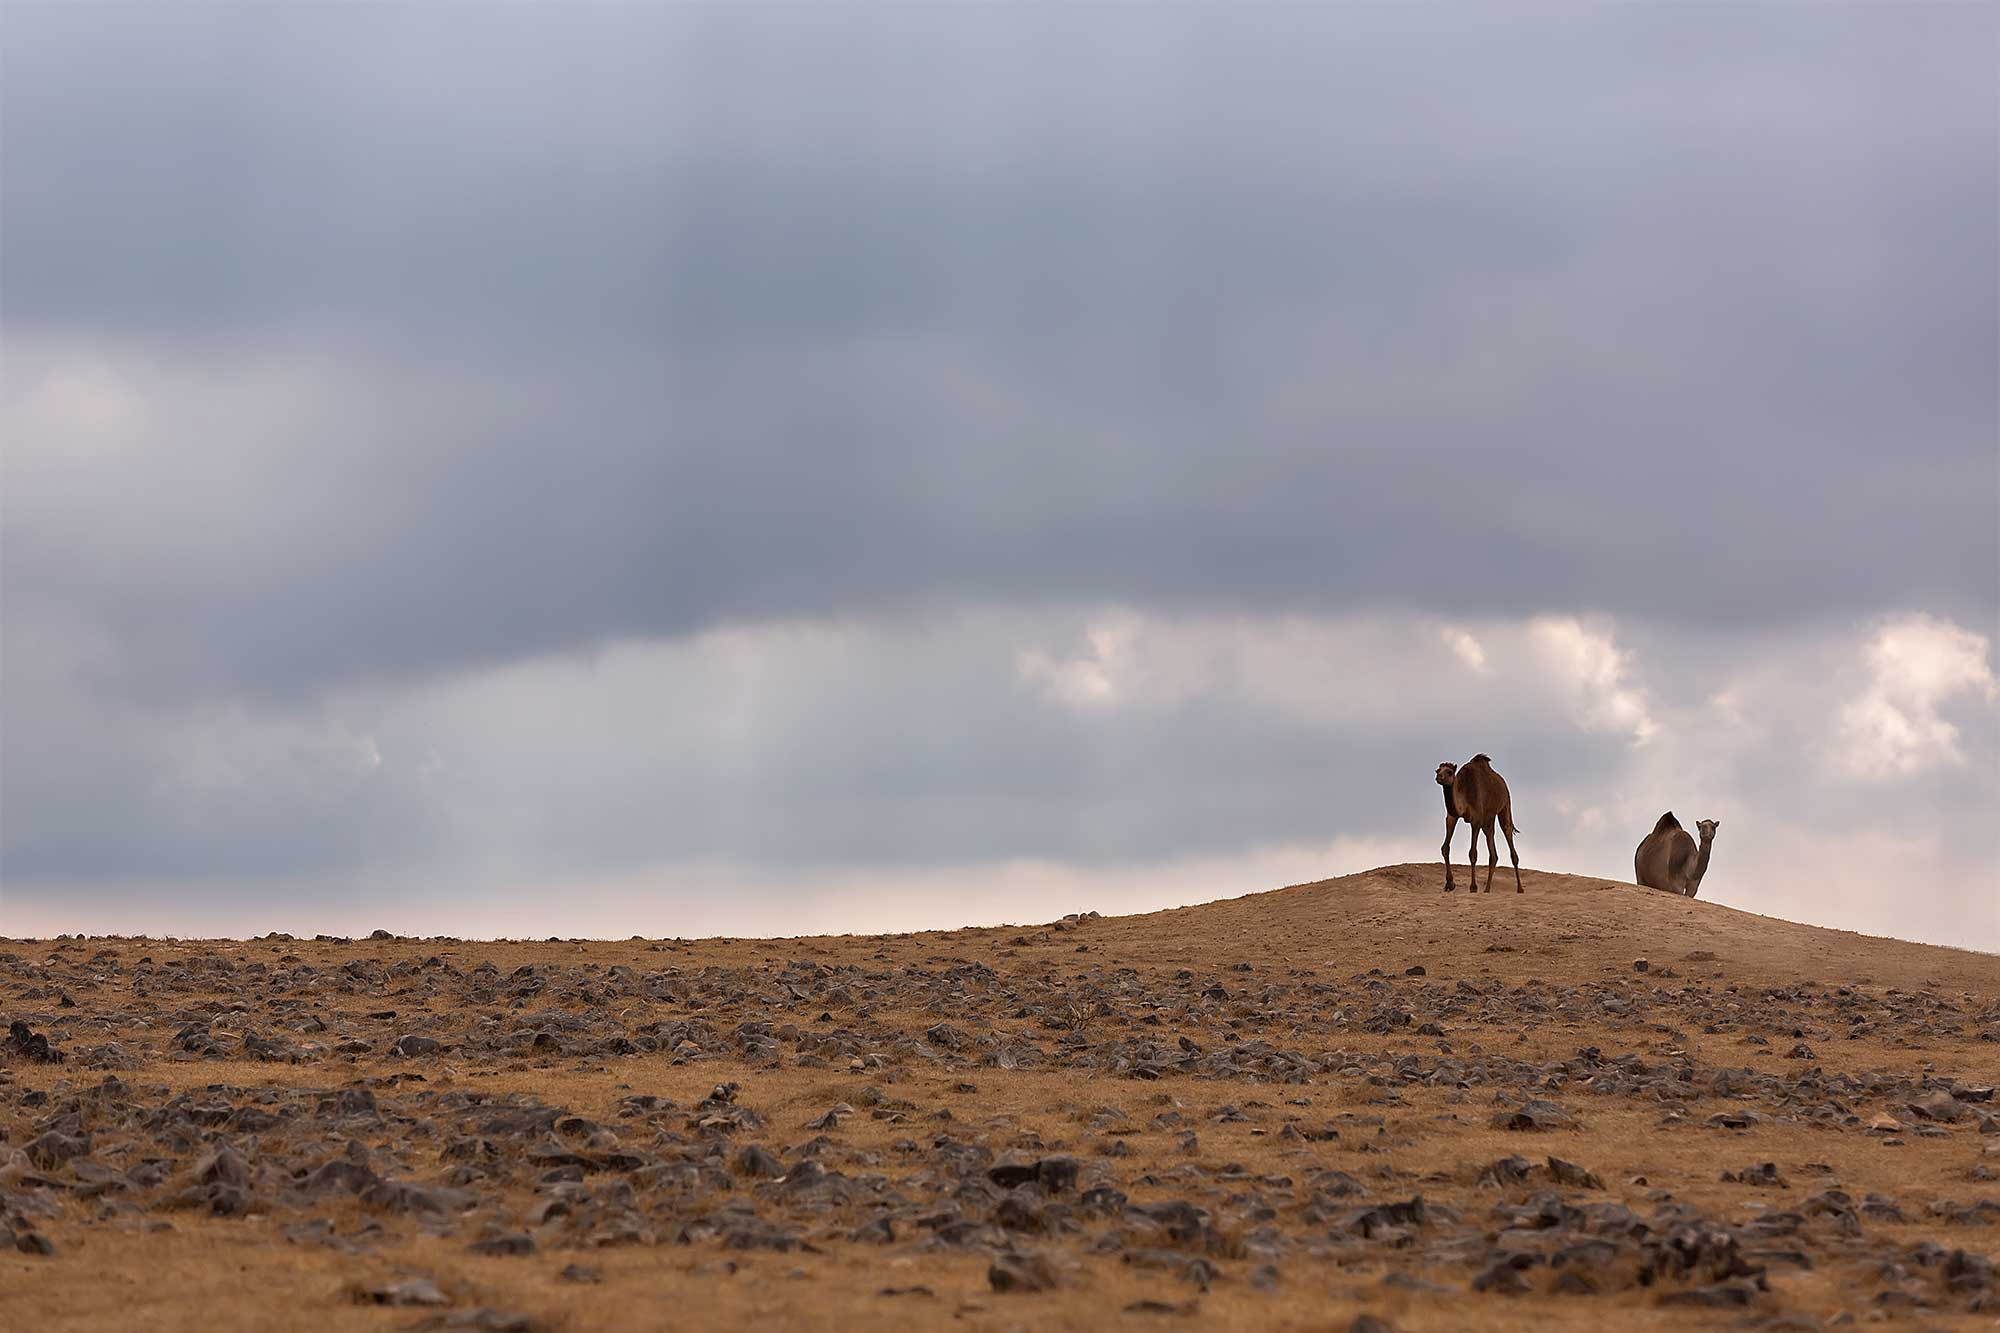 Camels in the desert of Oman. © Ulli Maier & Nisa Maier